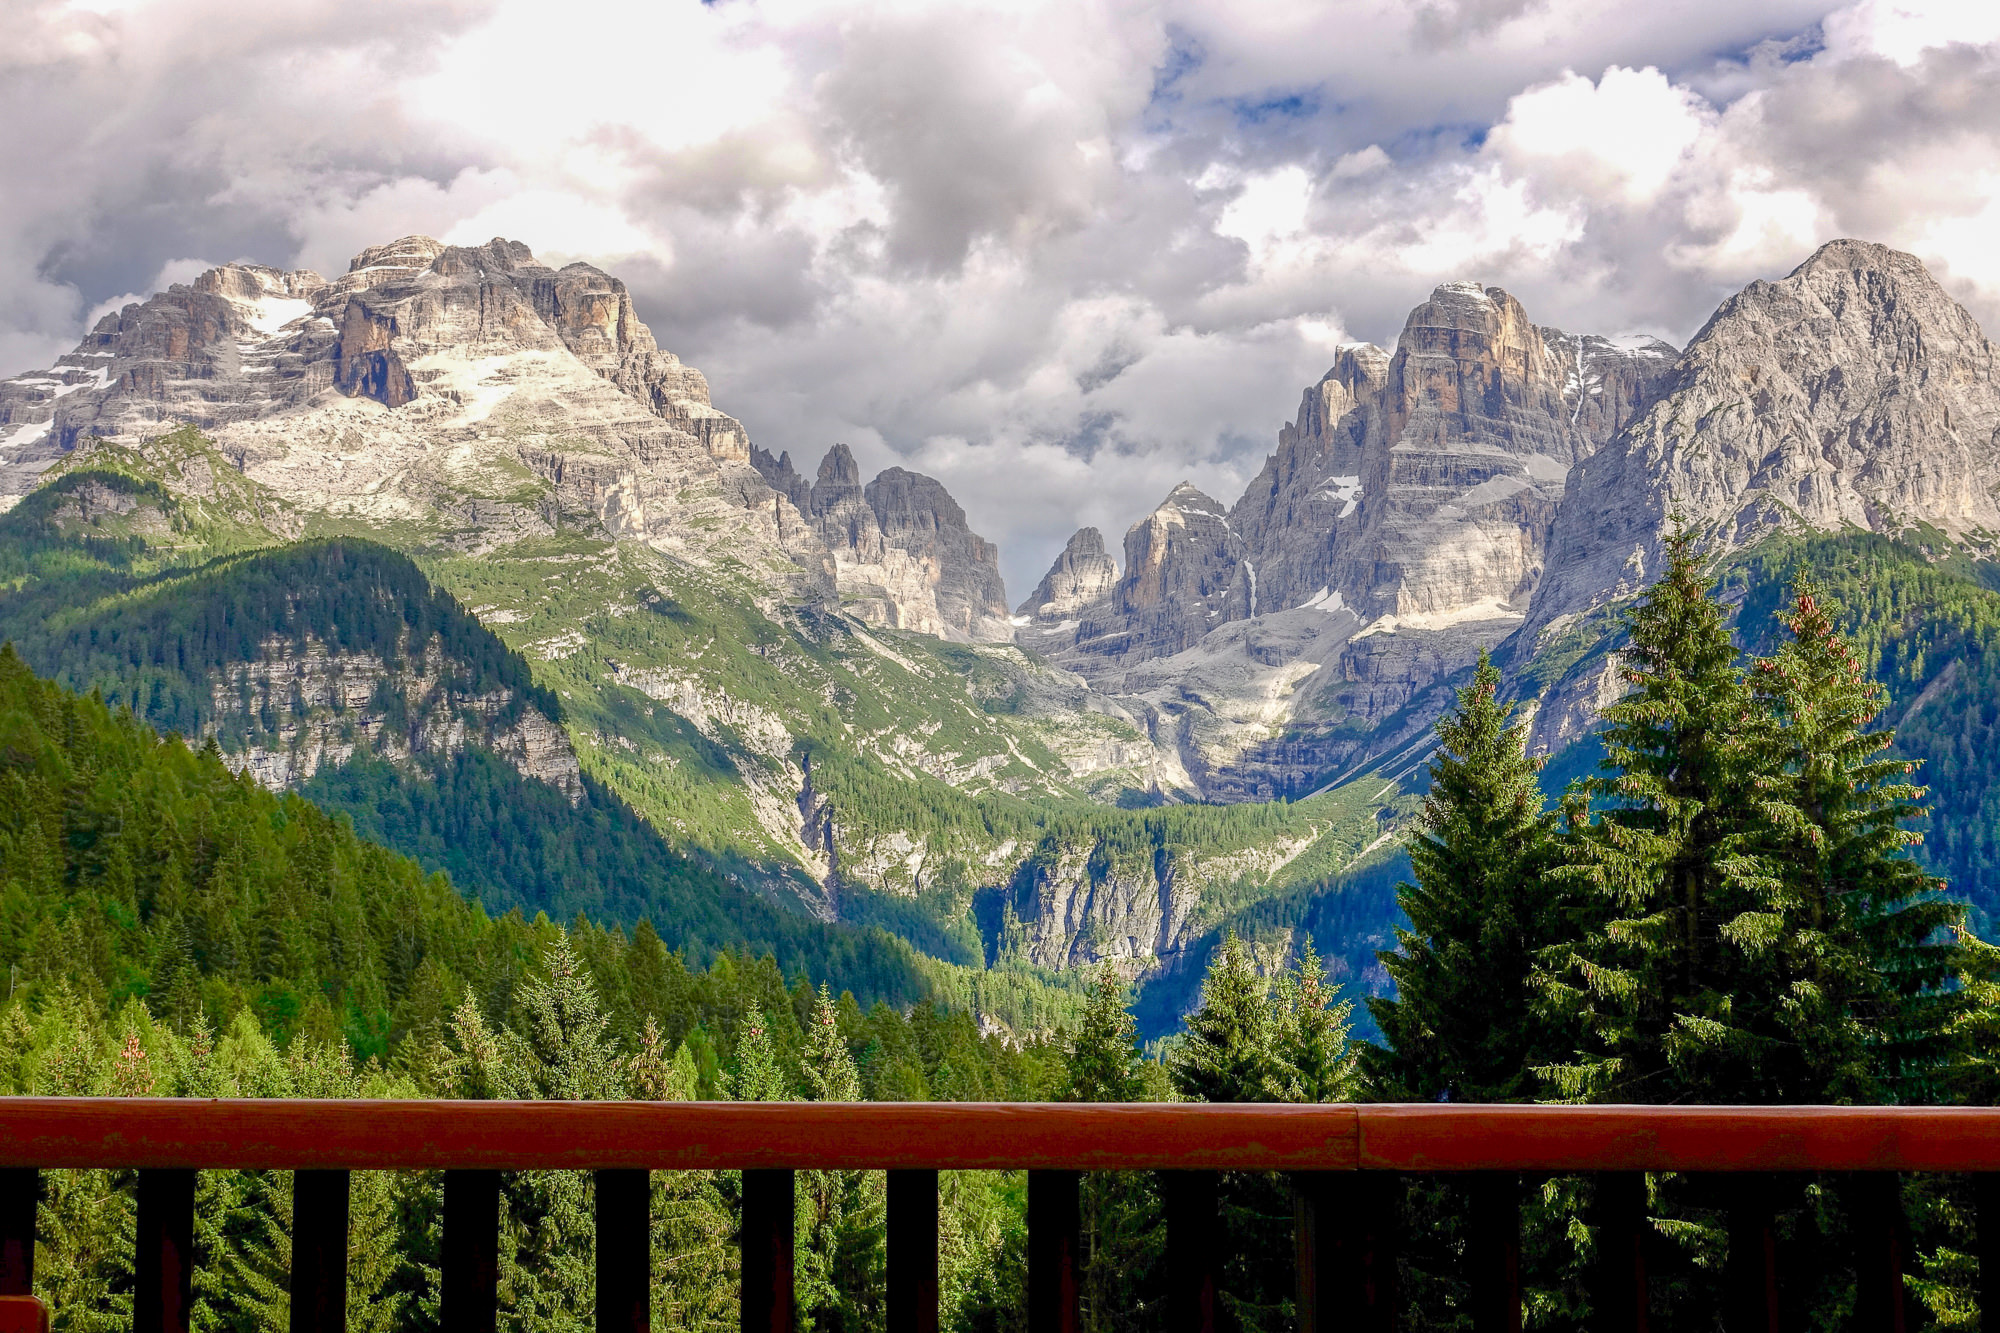 View from Luxury Hotel BioHotel Hermitage Madonna di Compiglio Italy Dolomites